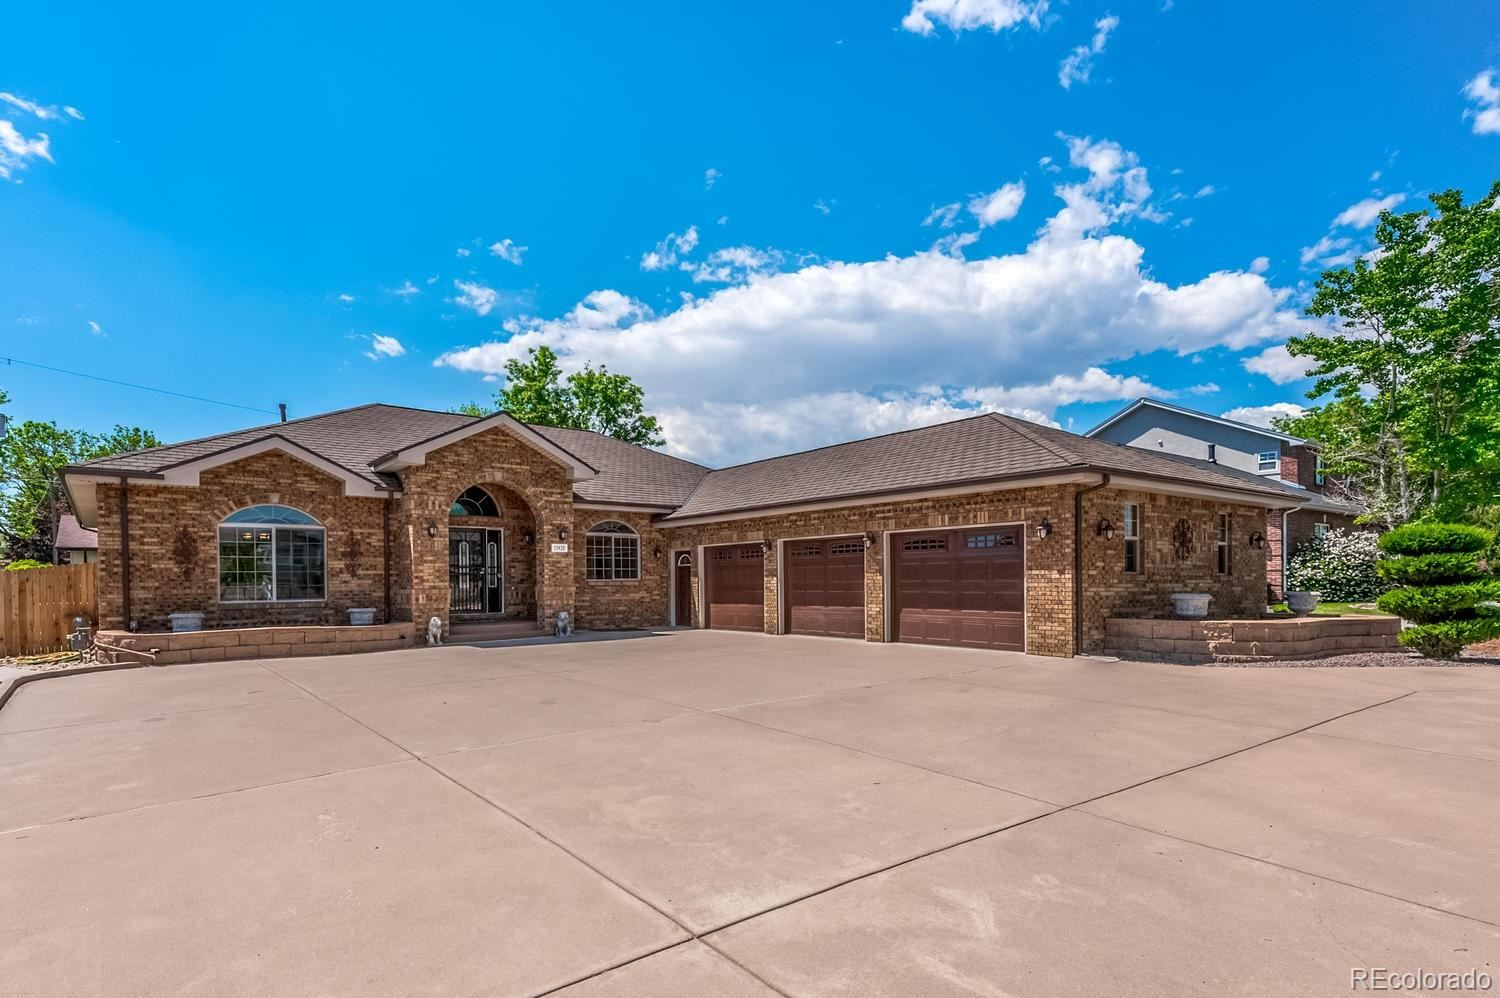 11920 W 38th Avenue, Wheat Ridge, CO 80033 - #: 7914350